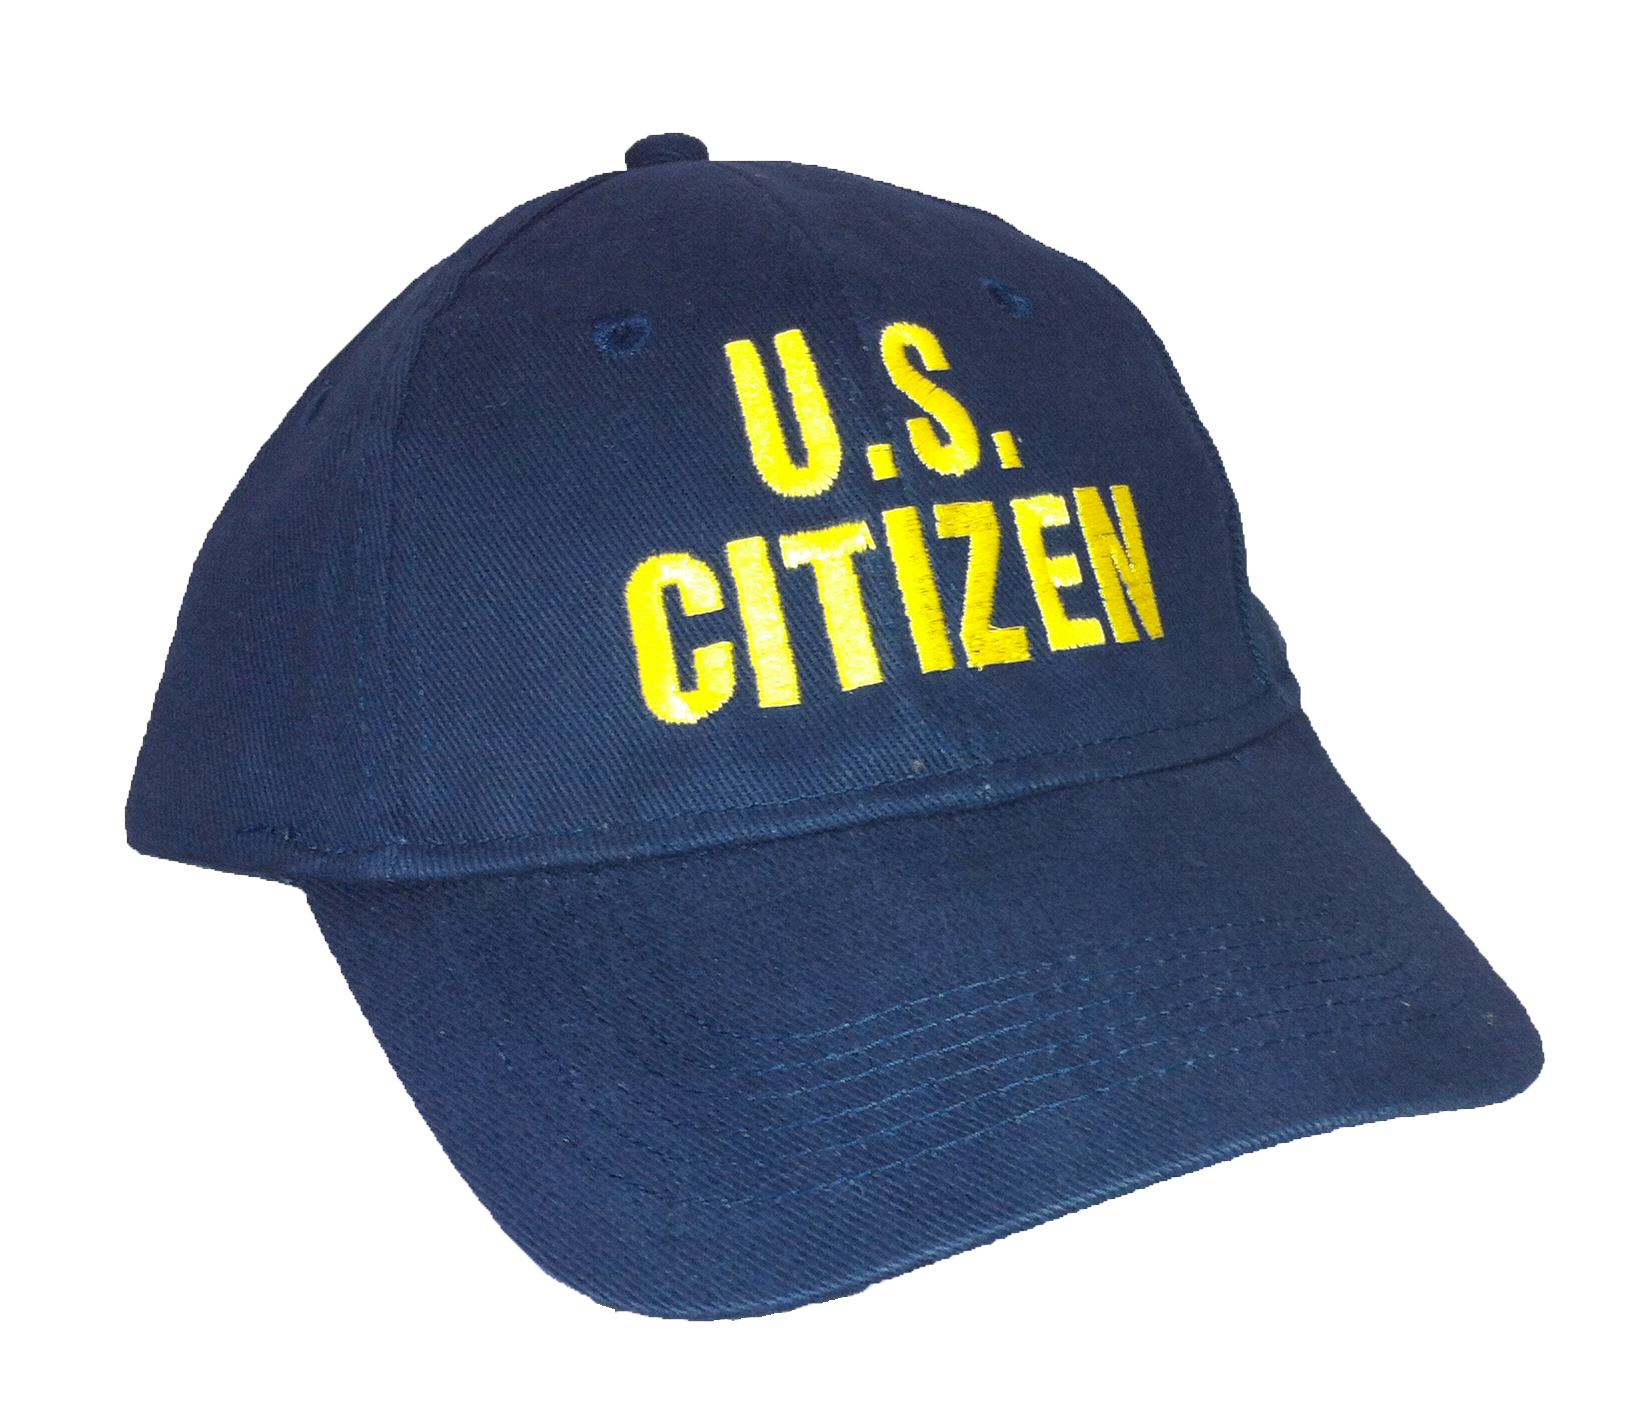 u s citizen: